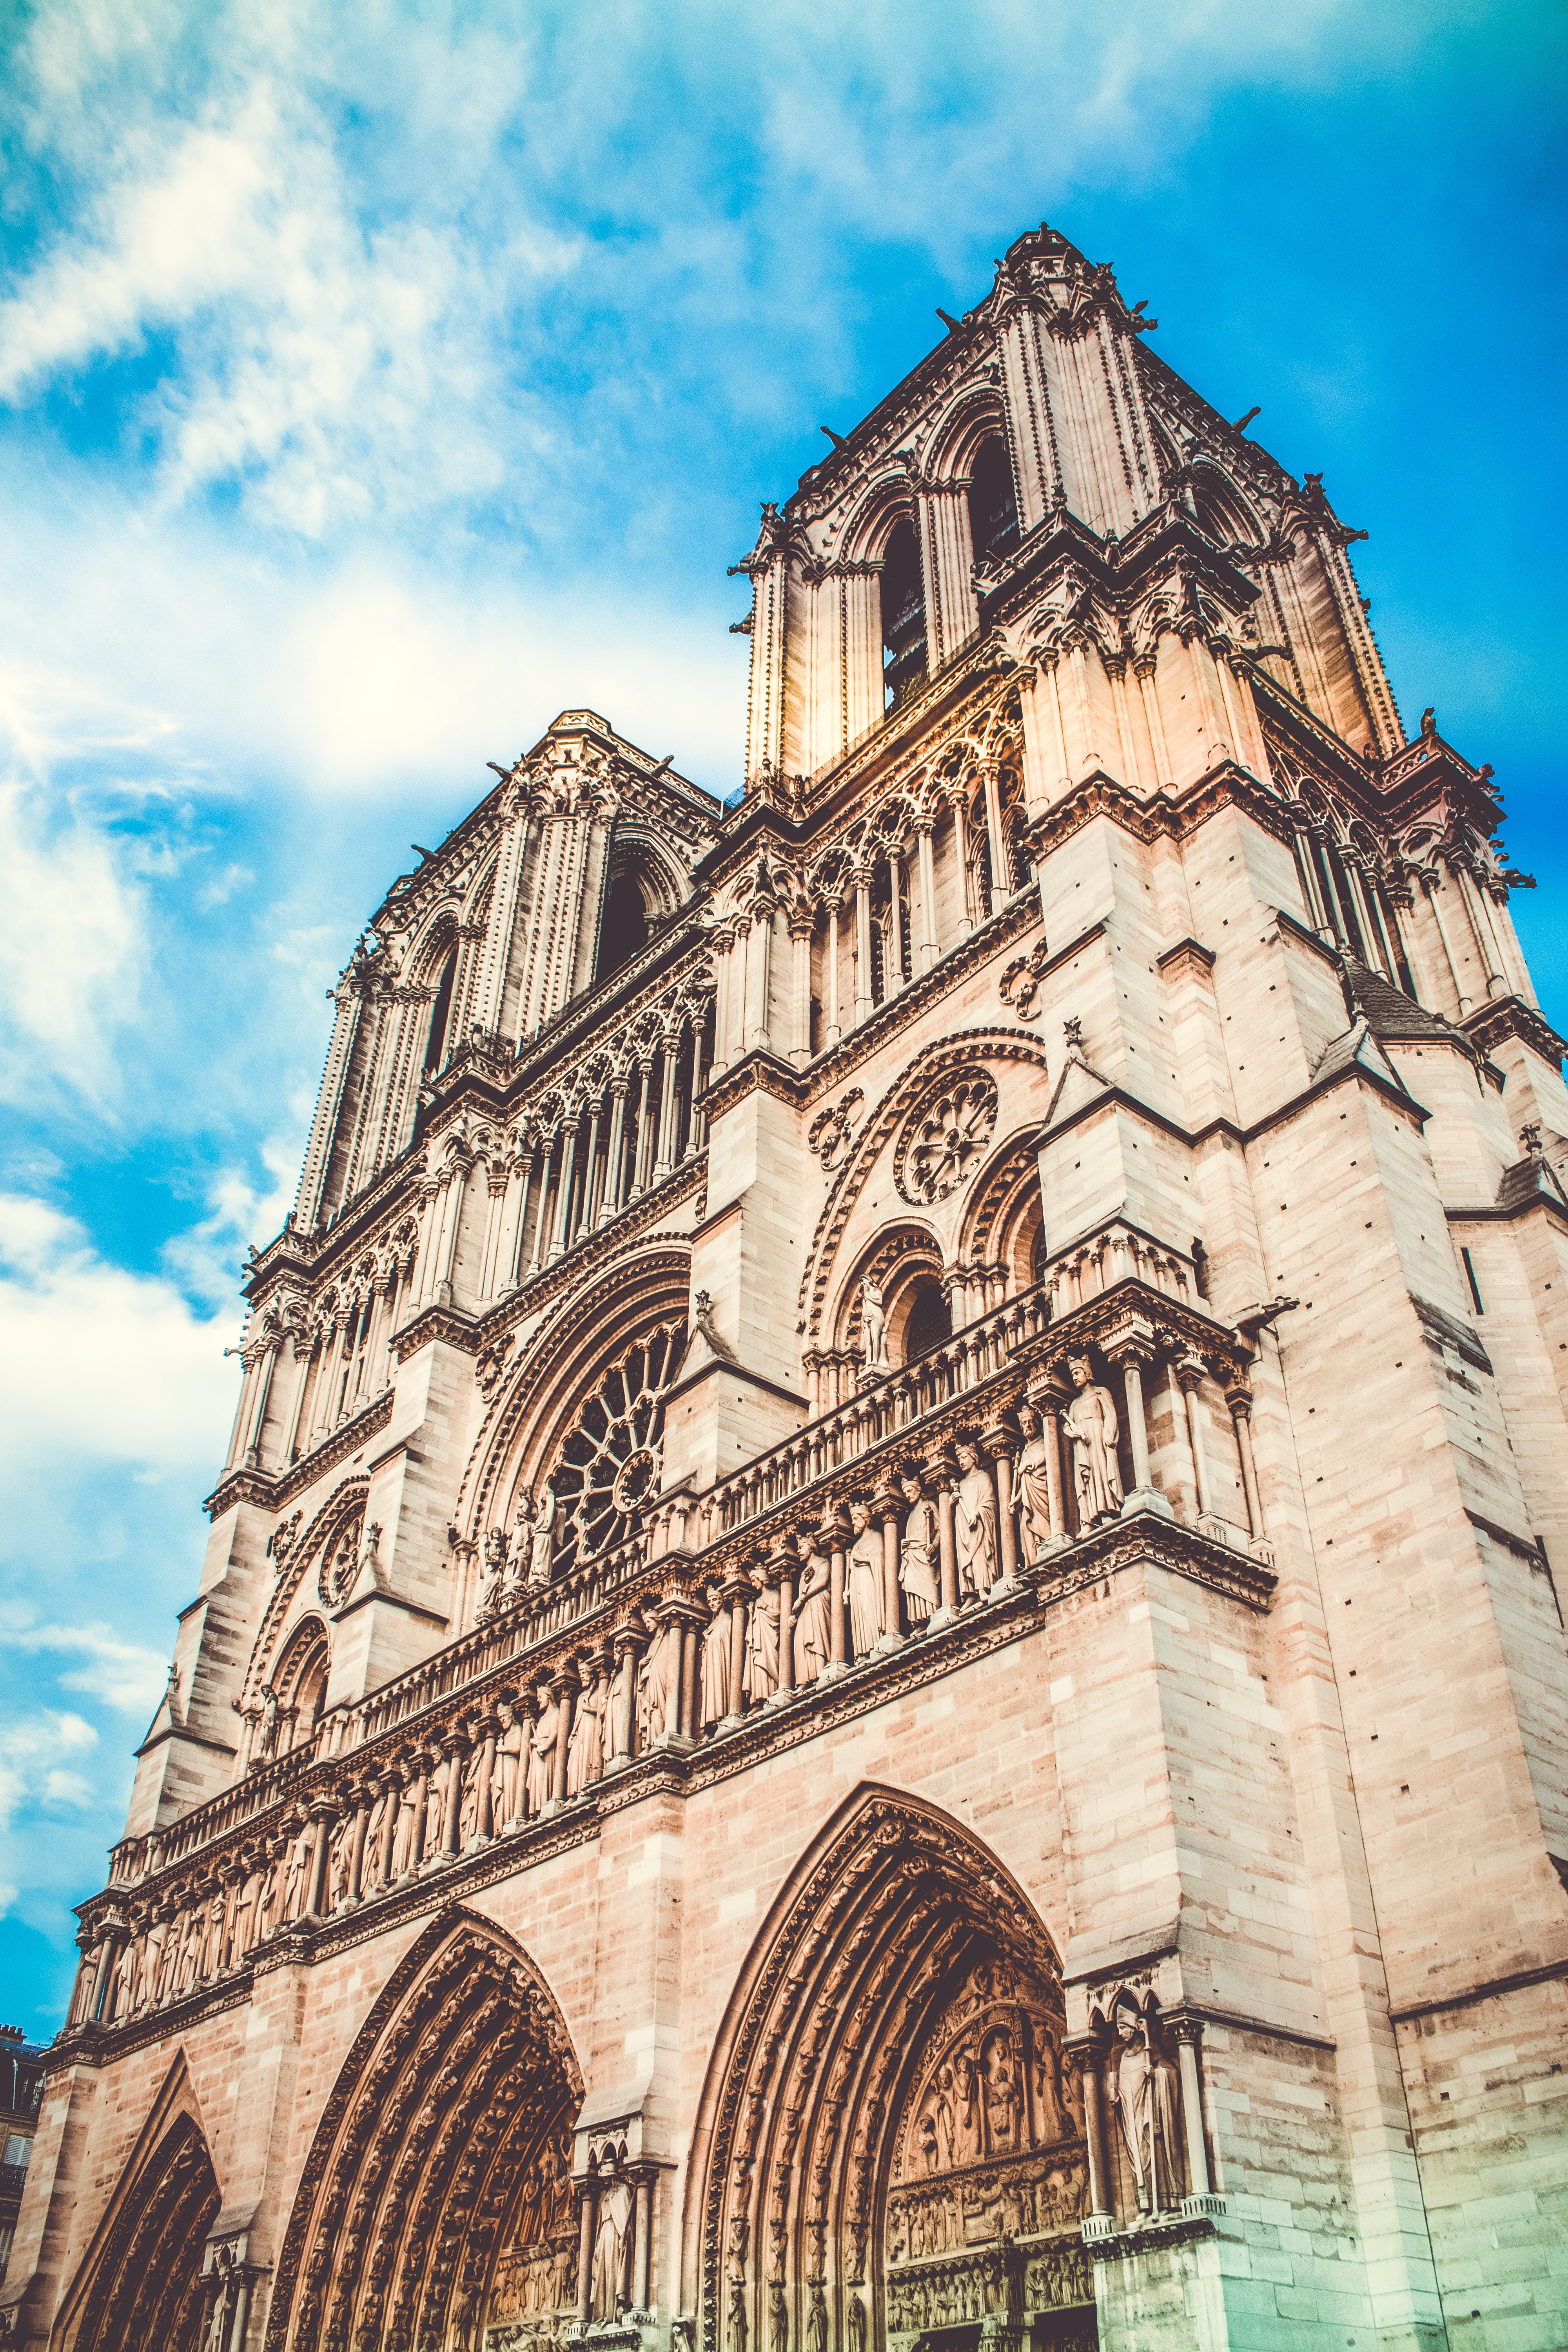 Low-angle Photography of Notre Dame